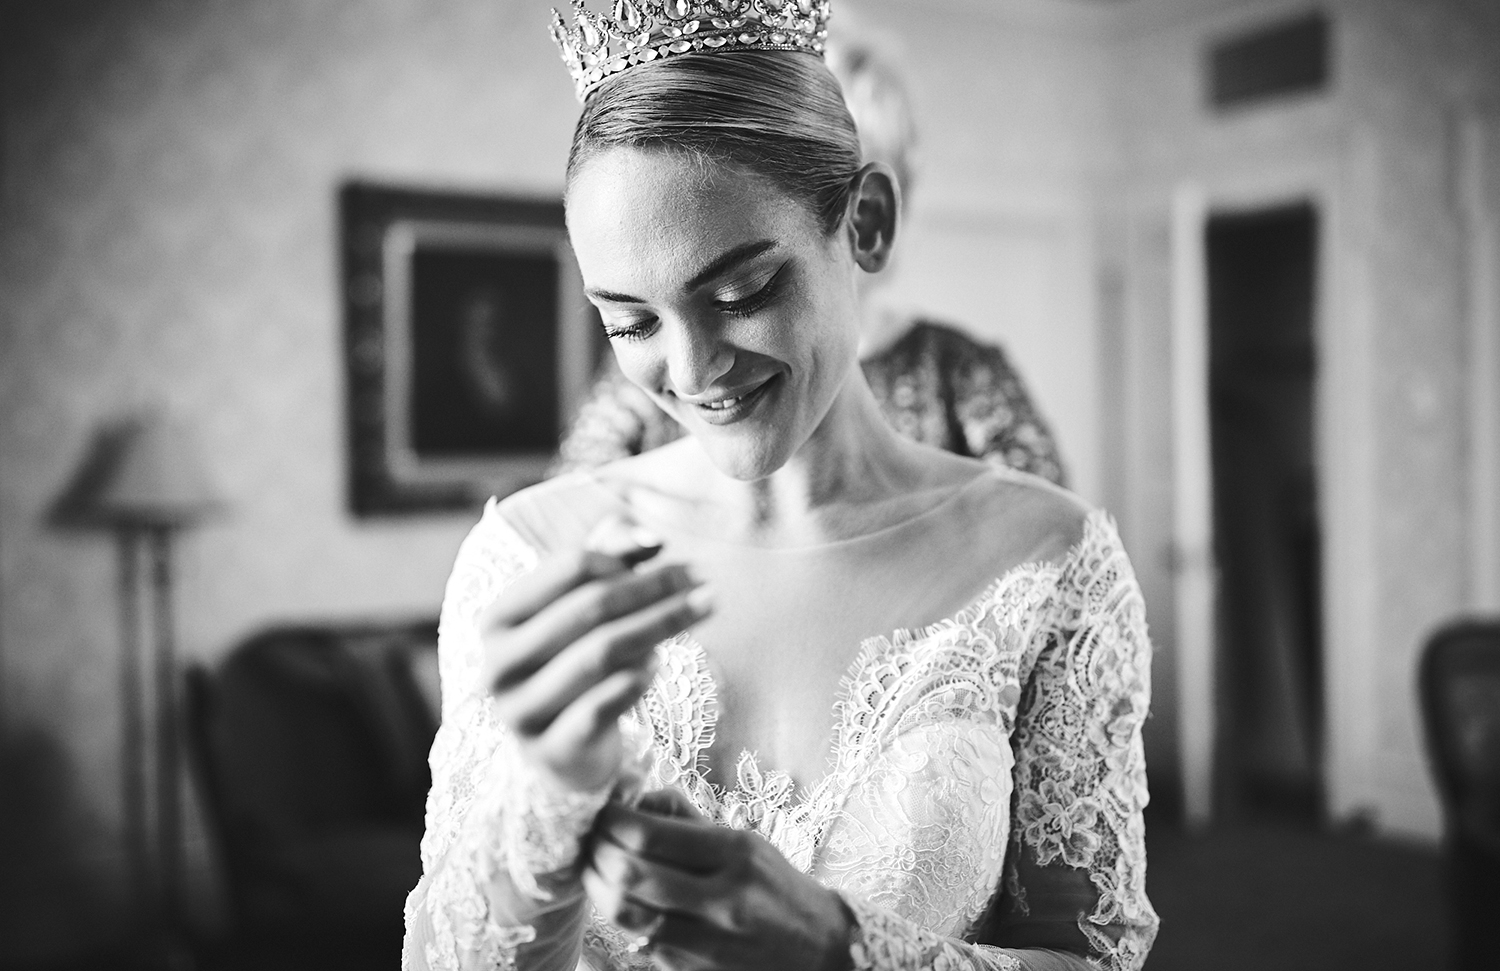 171111_CairnwoodEstateWeddingPhotography_PAWeddingPhotographer_By_BriJohnsonWeddings_0022.jpg